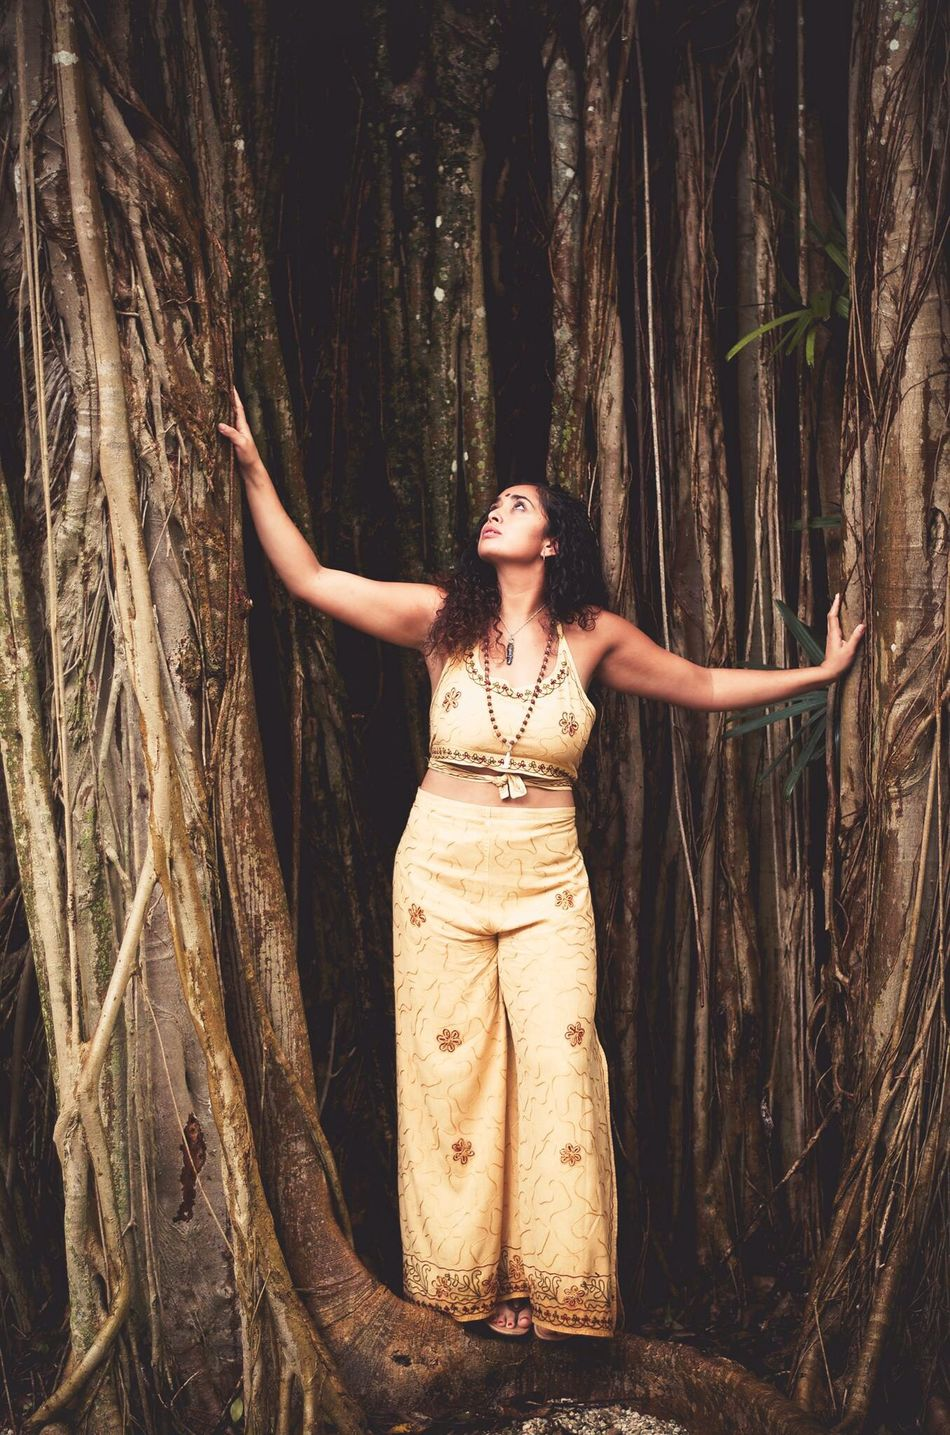 Self Love. I see myself in everything. I Am Tree. Fashion Beauty Forest Beautiful People Nature Elégance Make-up Fashion Model Tree Arts Culture And Entertainment WoodLand Glamour One Person Women Beautiful Woman One Woman Only Only Women Beauty In Nature Curly Hair Serene People Bindi Saree Consciousness Tree Shaman EyeEmNewHere